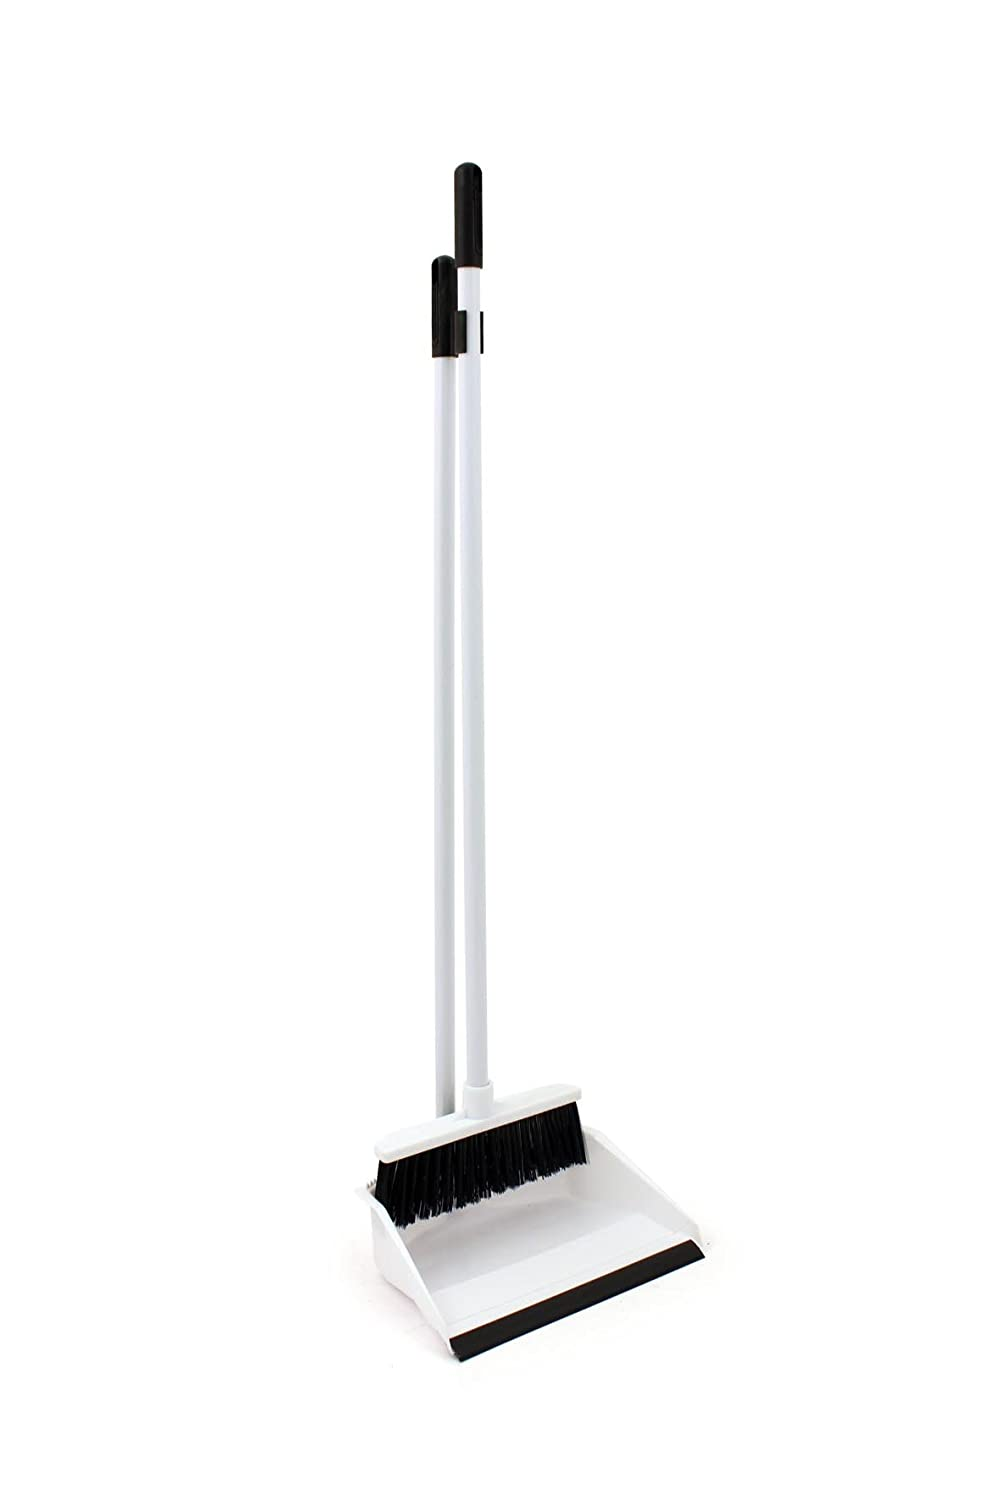 Bentley Industrial P8008/BW Long Handled Dustpan and Brush Set, Black/White Charles Bentley & Son Ltd